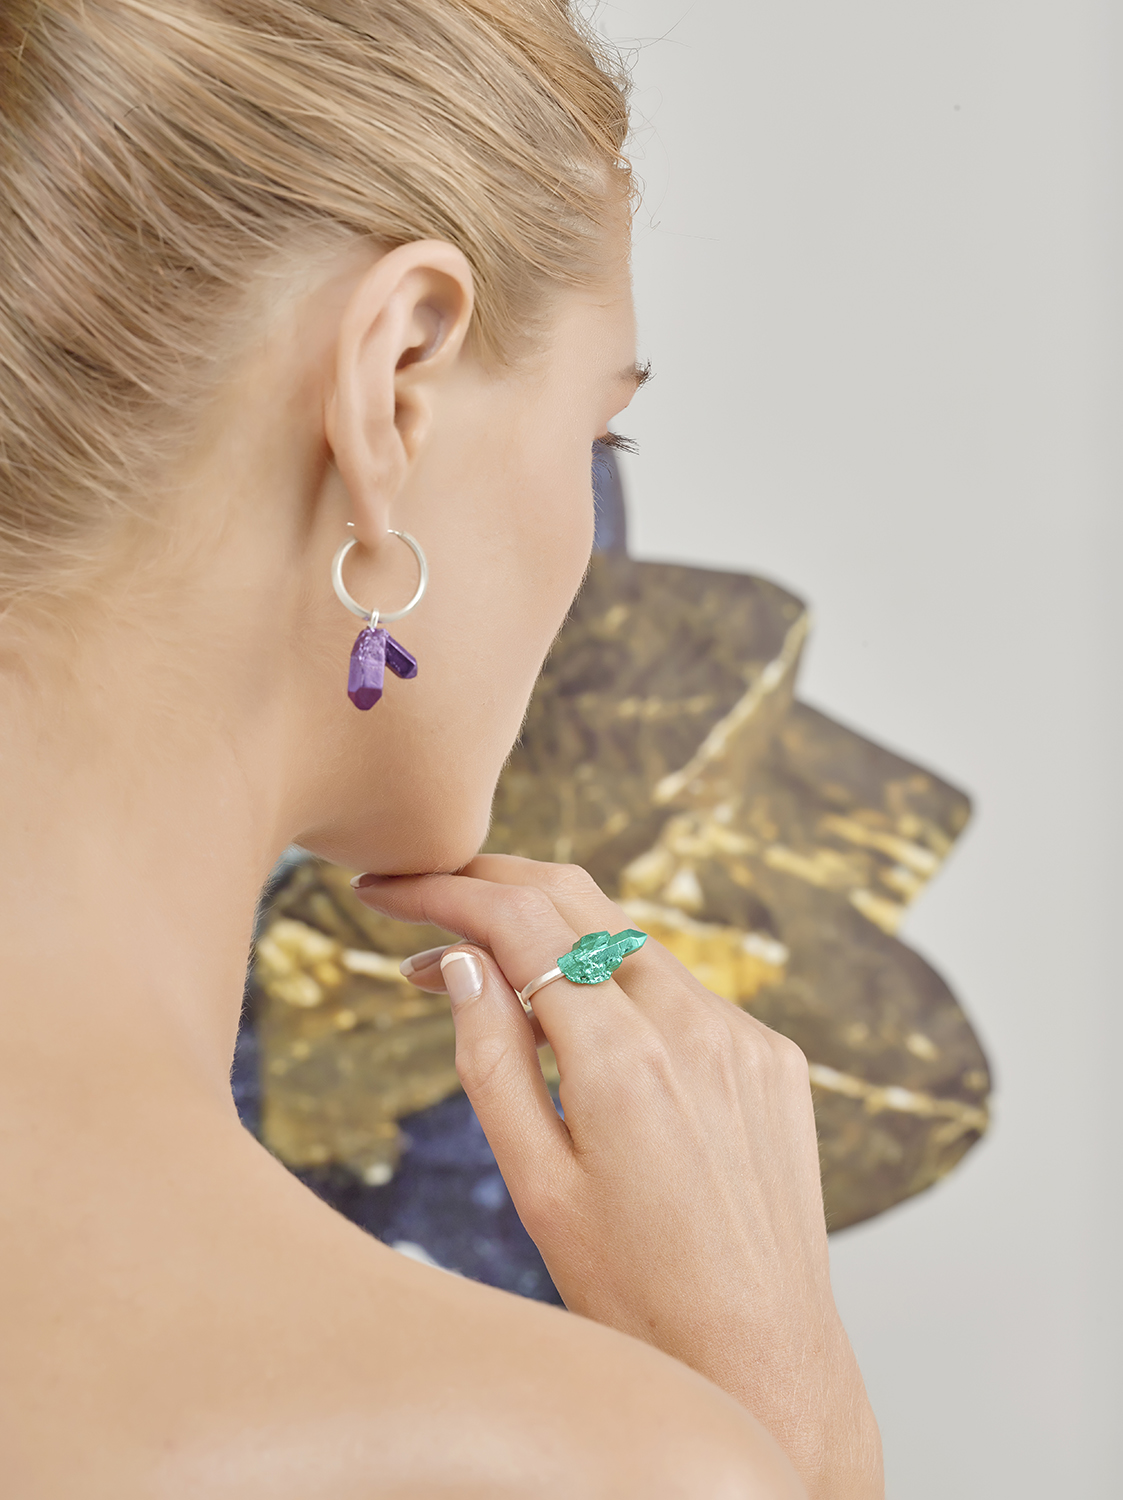 HotRocks Trigonal Small Cluster Ring in Green and Hoop Earring in Purple Low Res.jpg